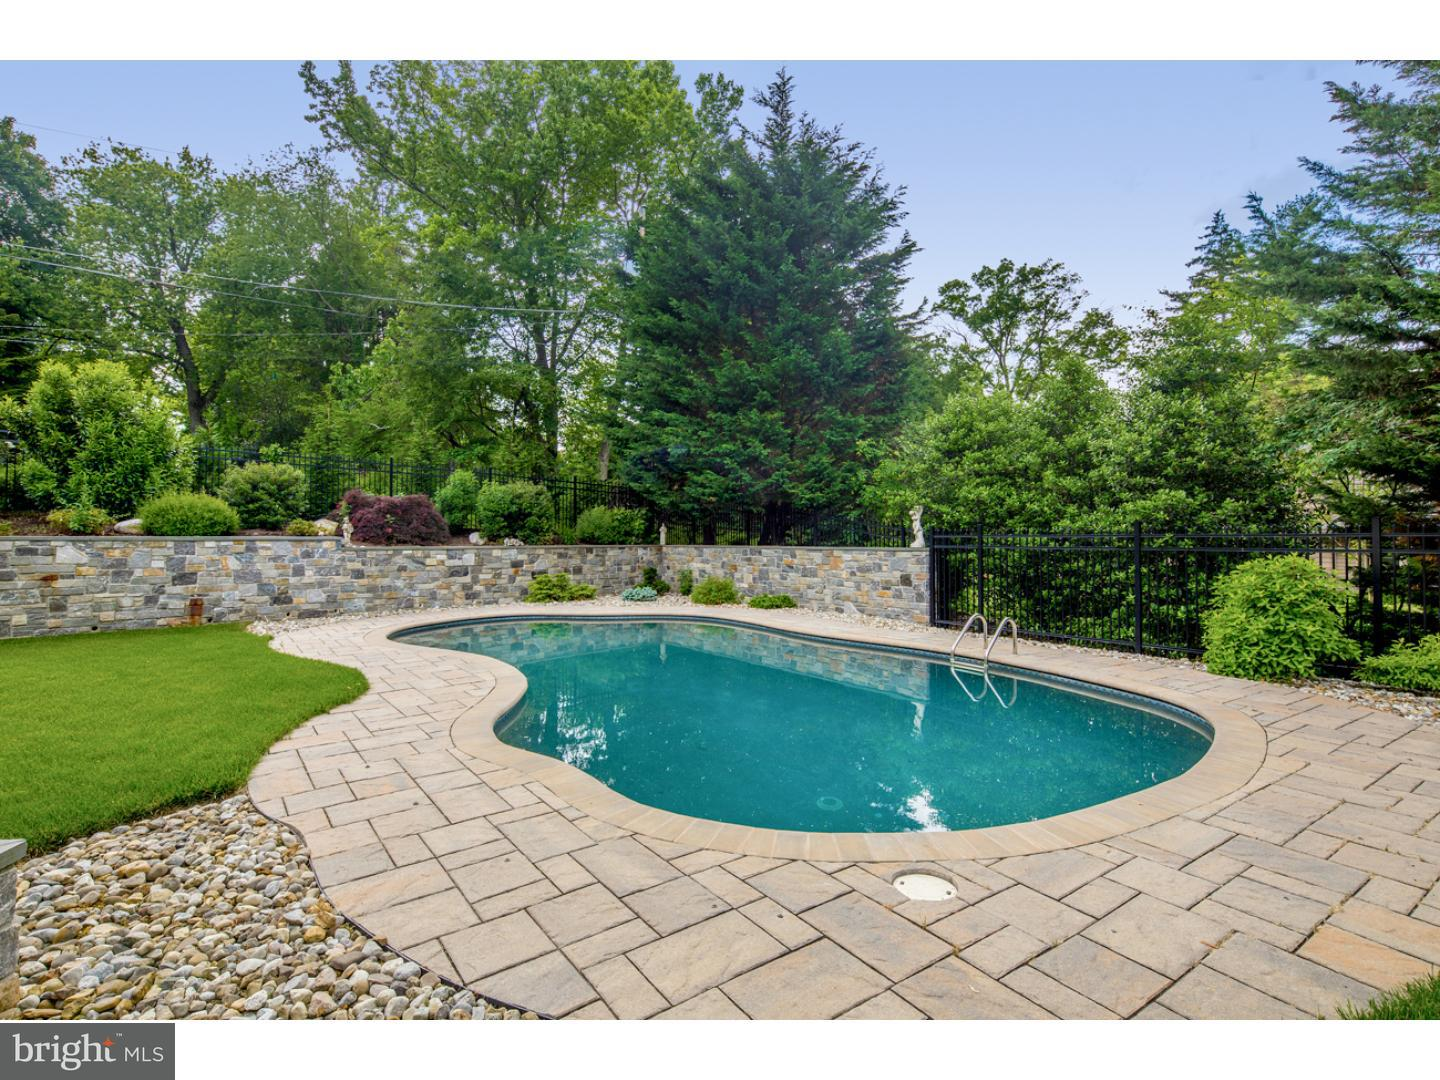 1075 Rock Creek Road Bryn Mawr , PA 19010